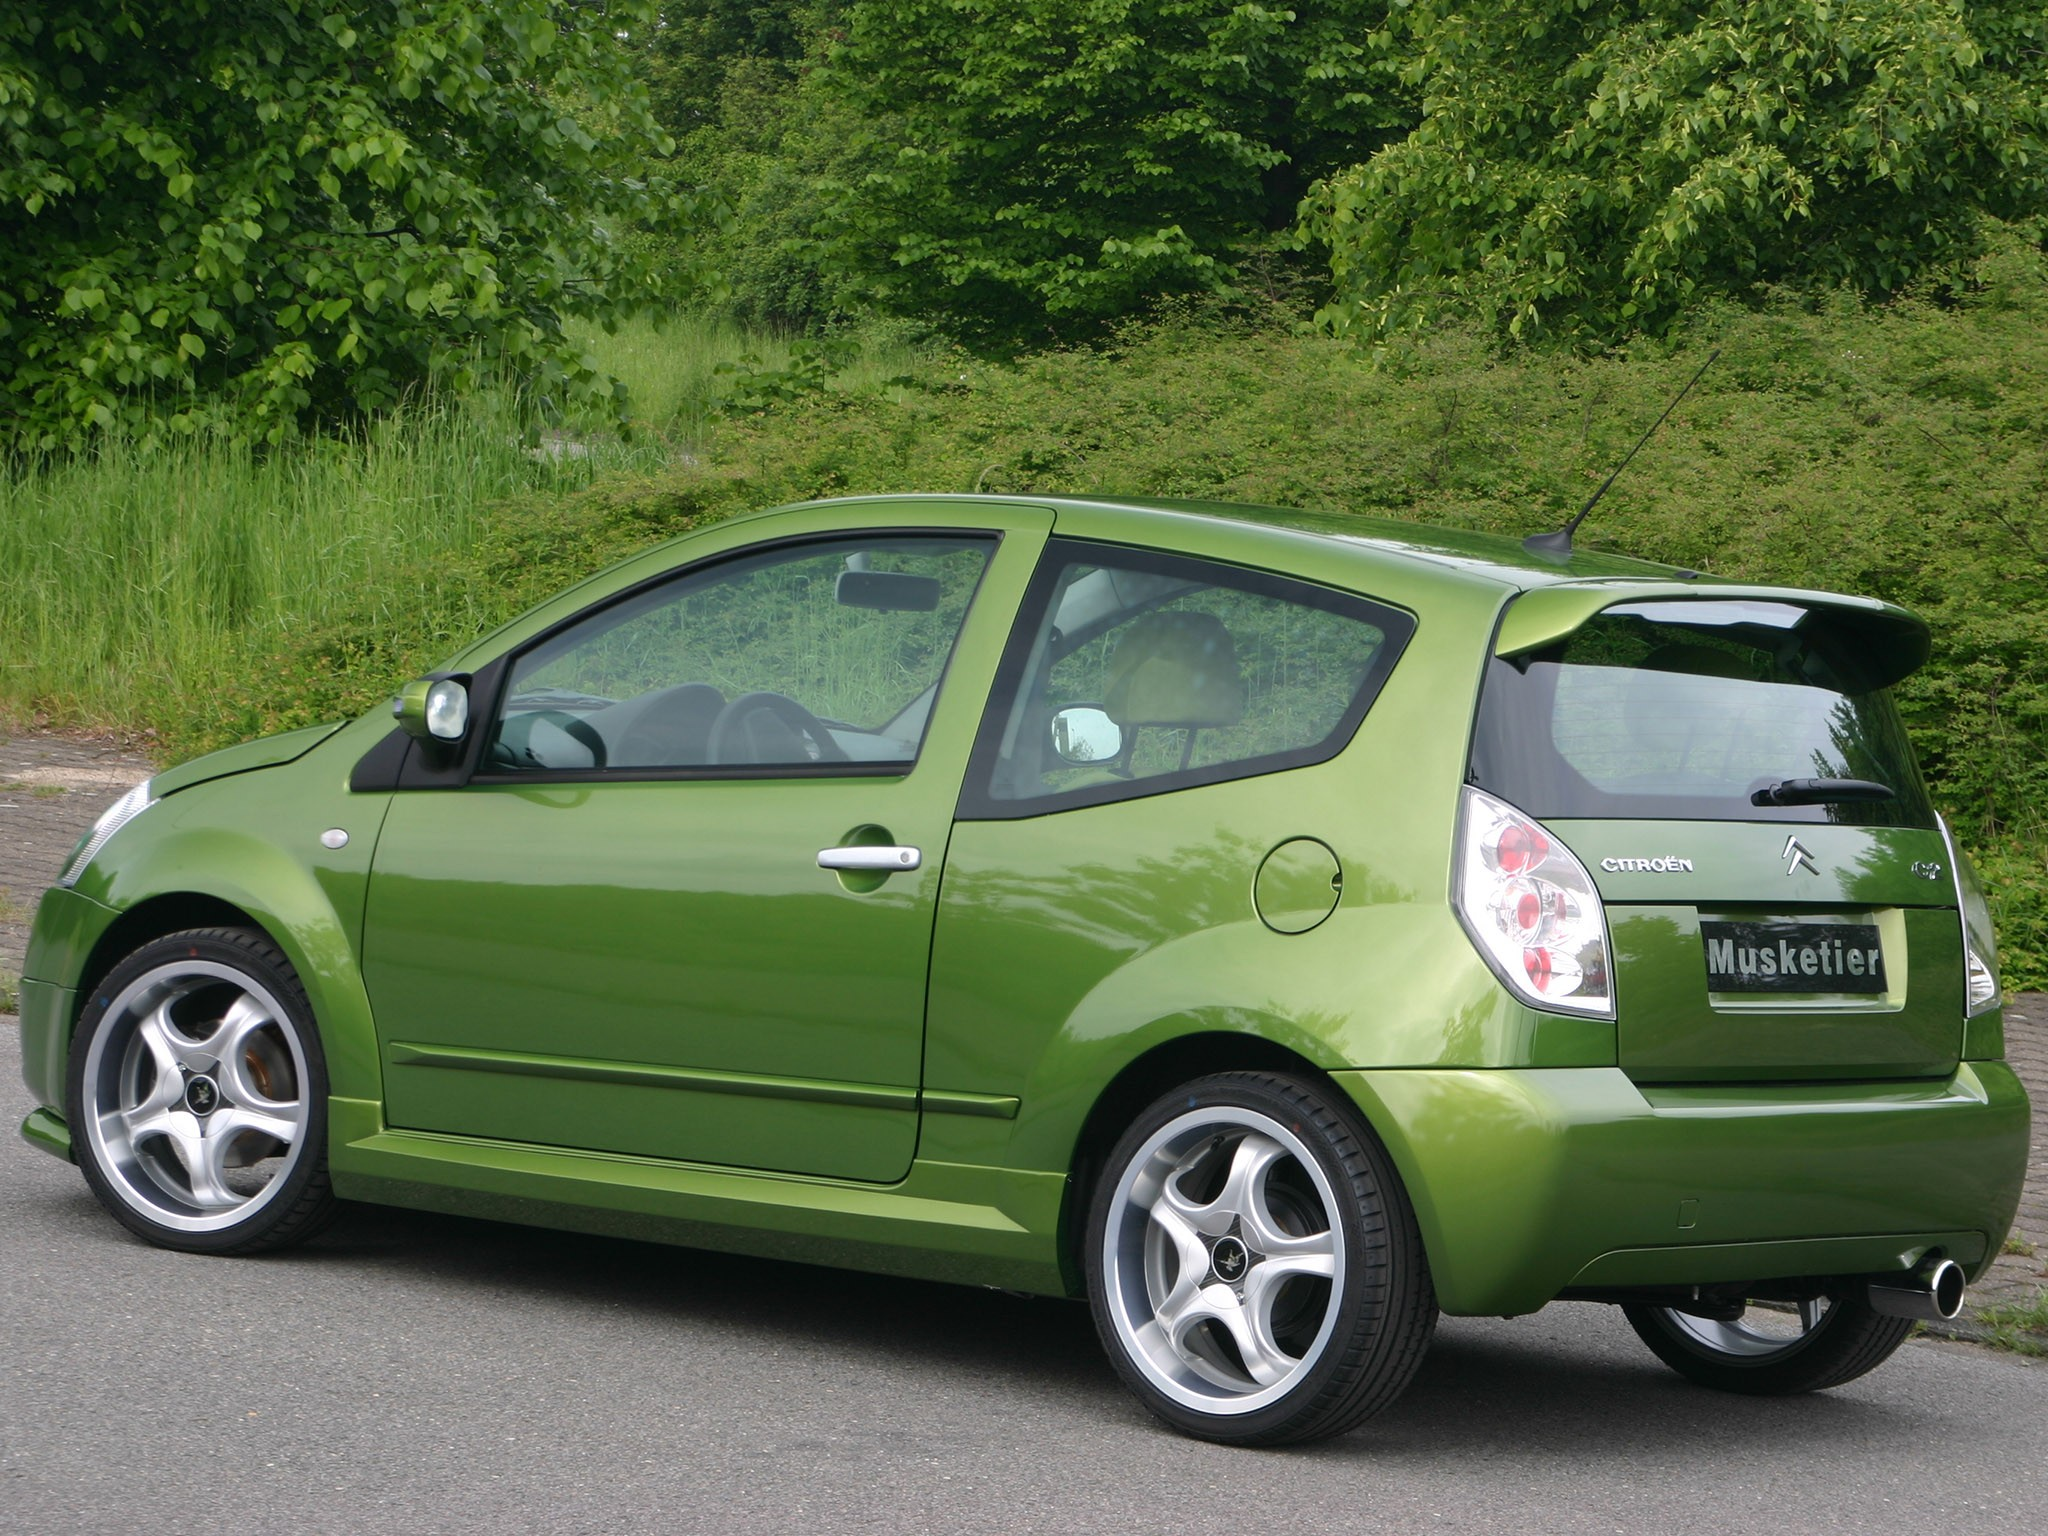 2003 Musketier Citroen C2